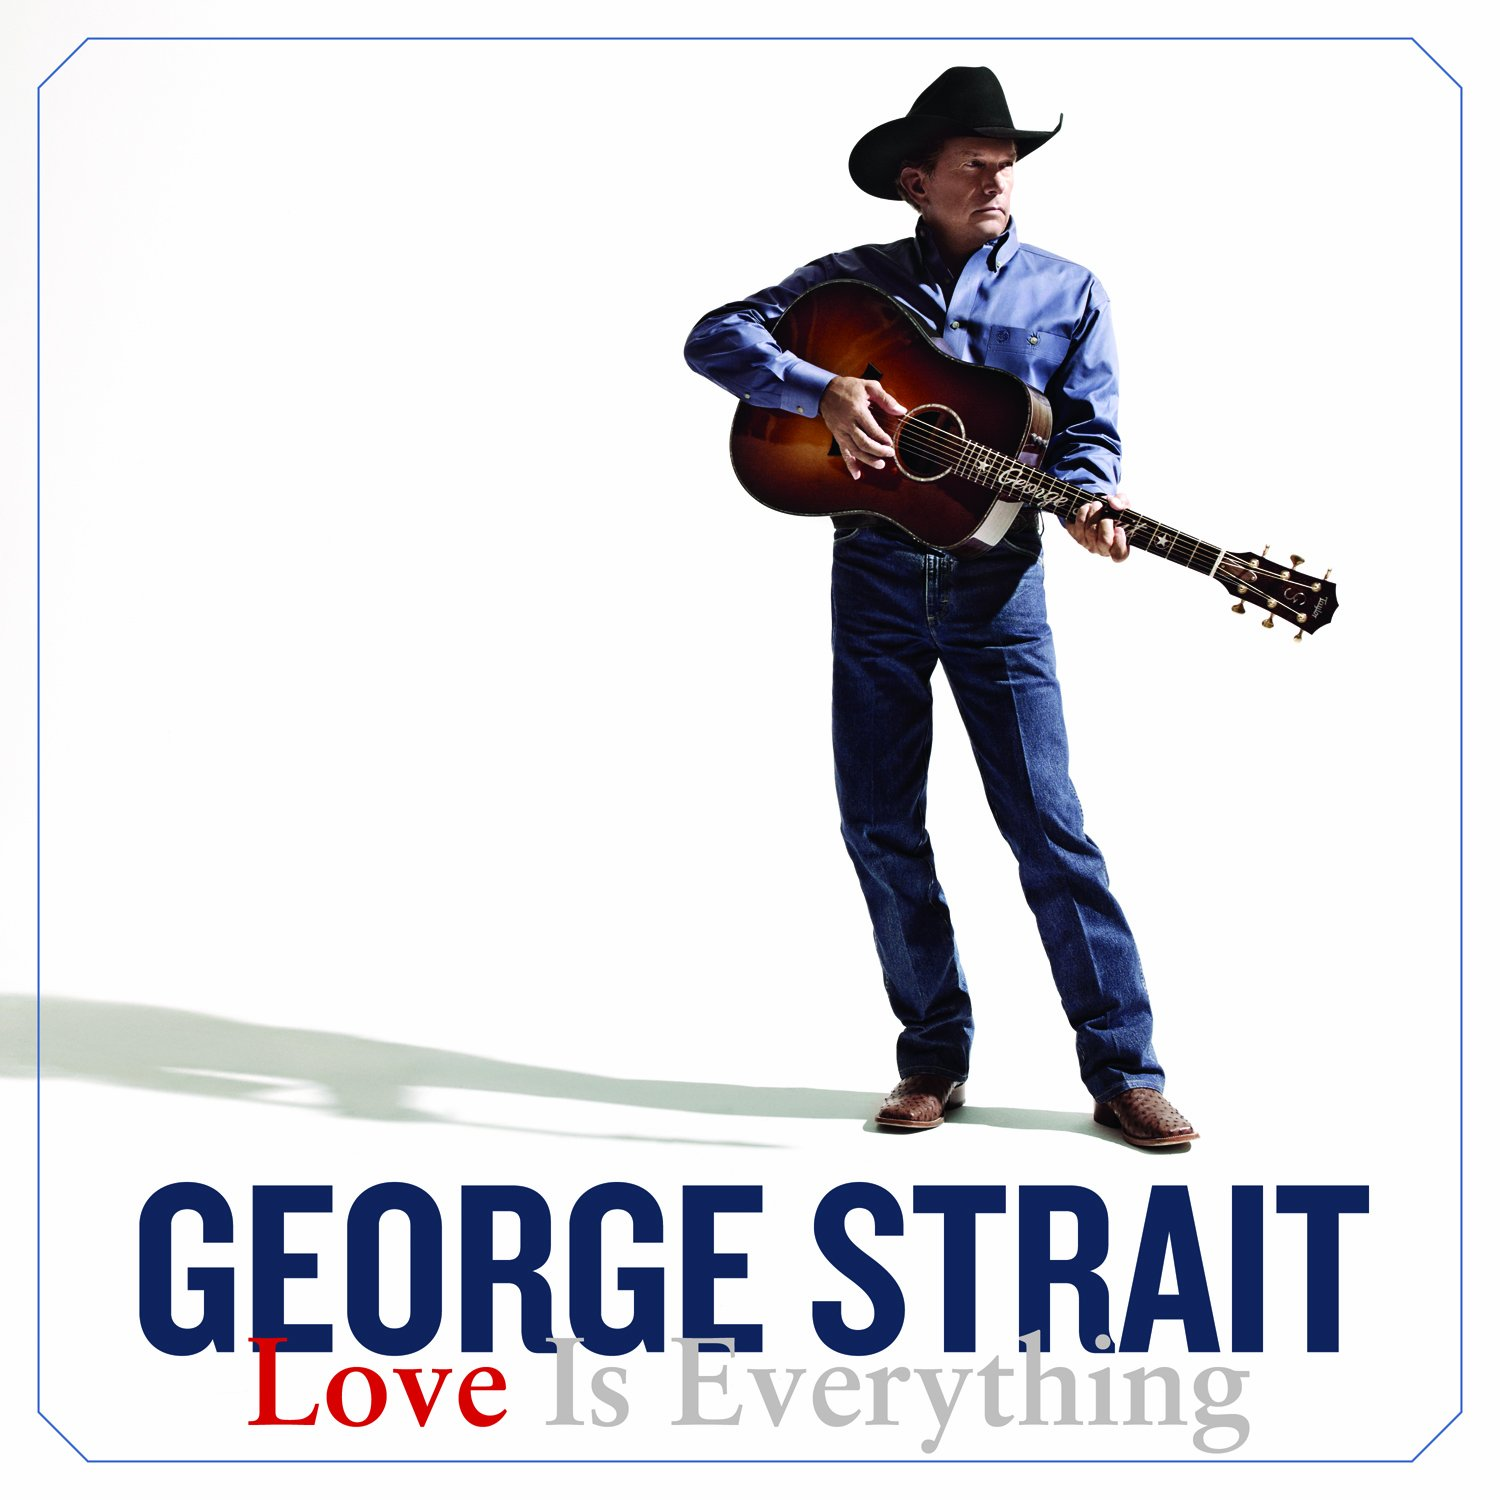 Buy George Strait Now!